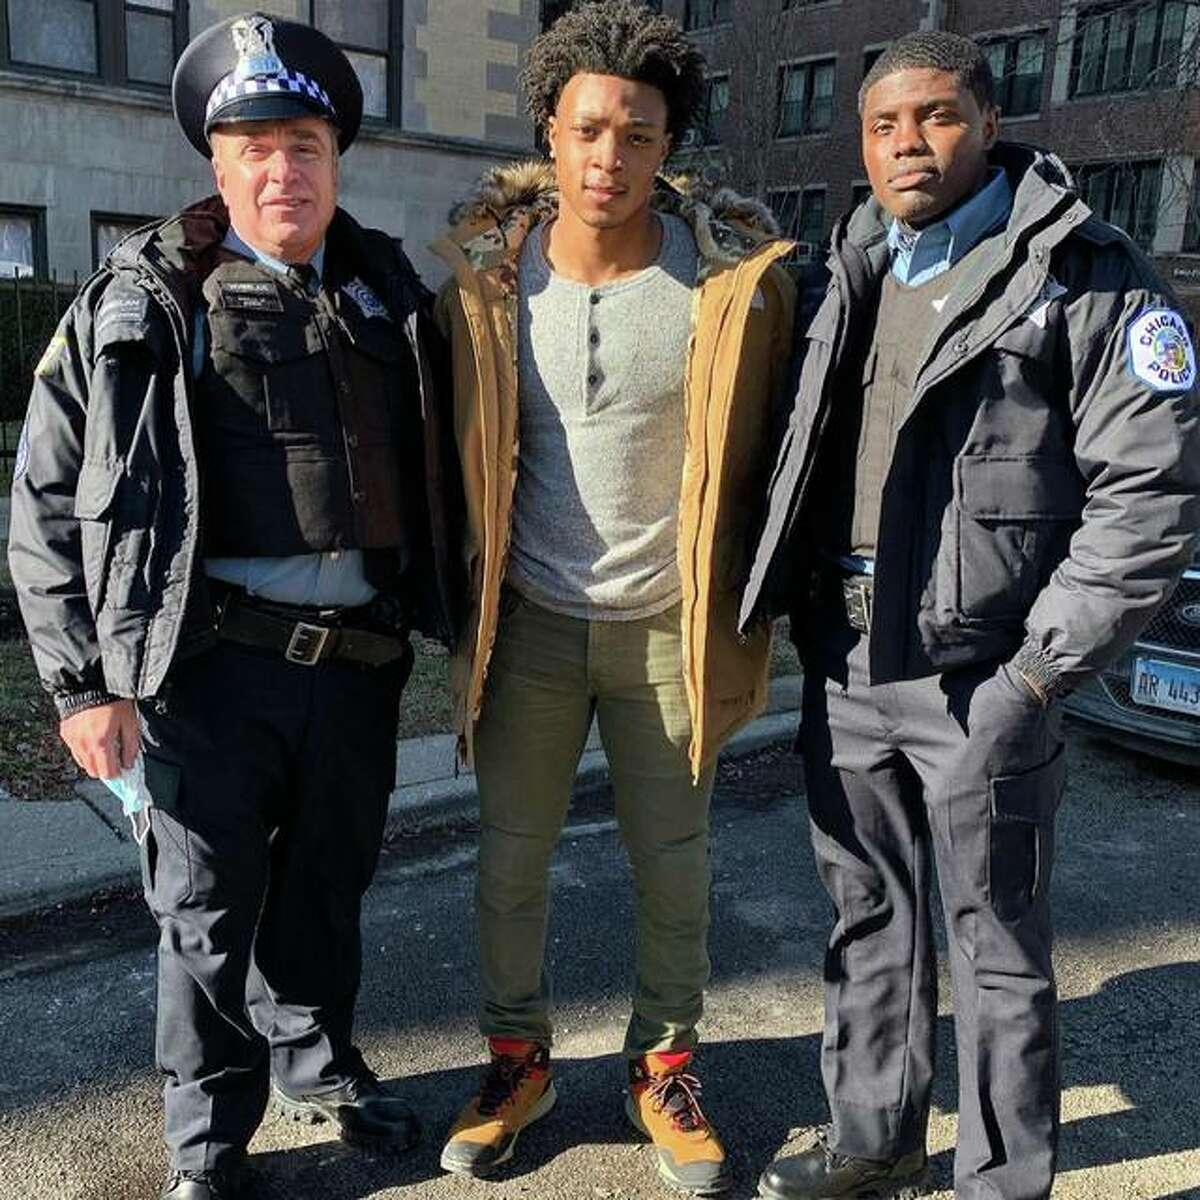 Edwardsville High School graduate Shawn Roundtree Jr., center, pictured with Michael Rispoli, left, and castmate from their scene in Chicago P.D.